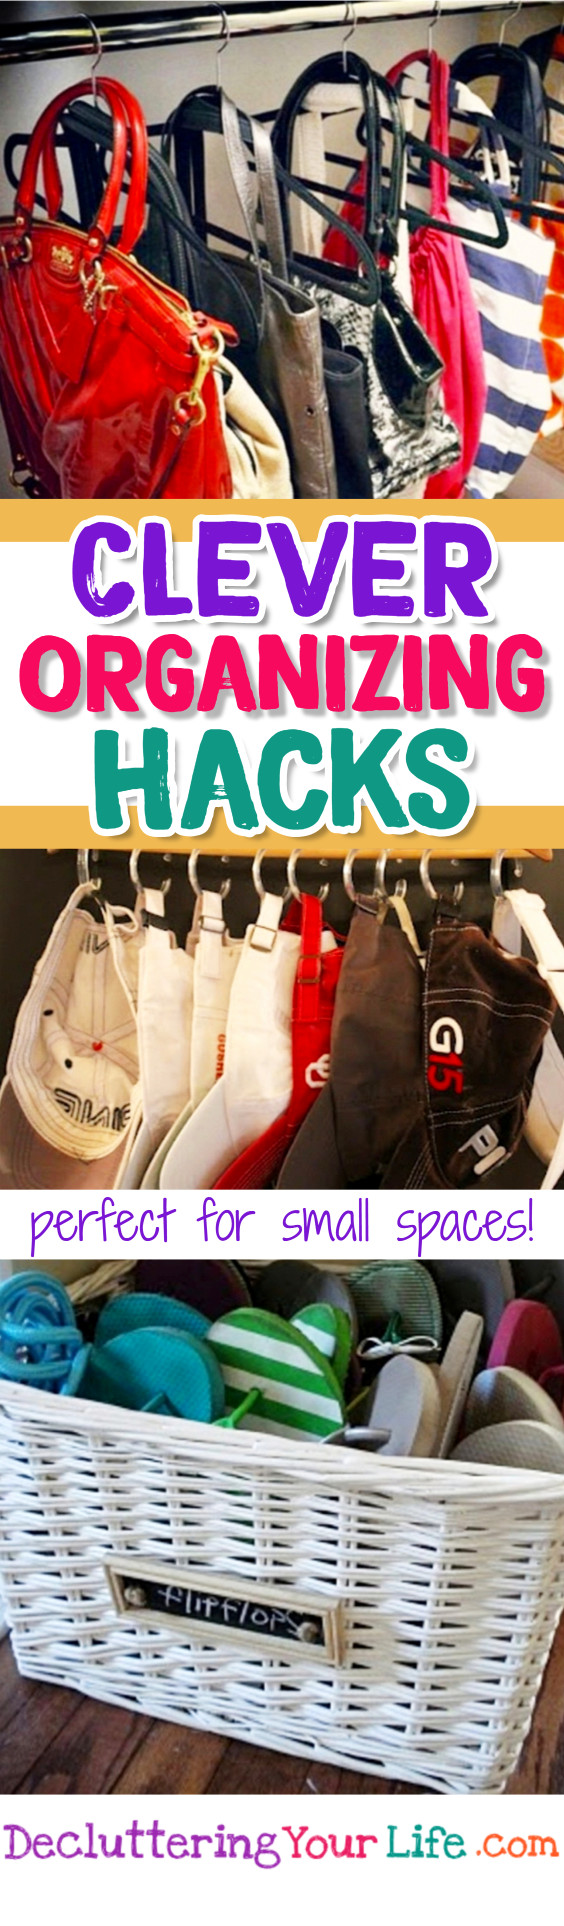 Organizing Hacks Tips and Tricks for Small Spaces - Easy DIY organizing hacks and organization ideas